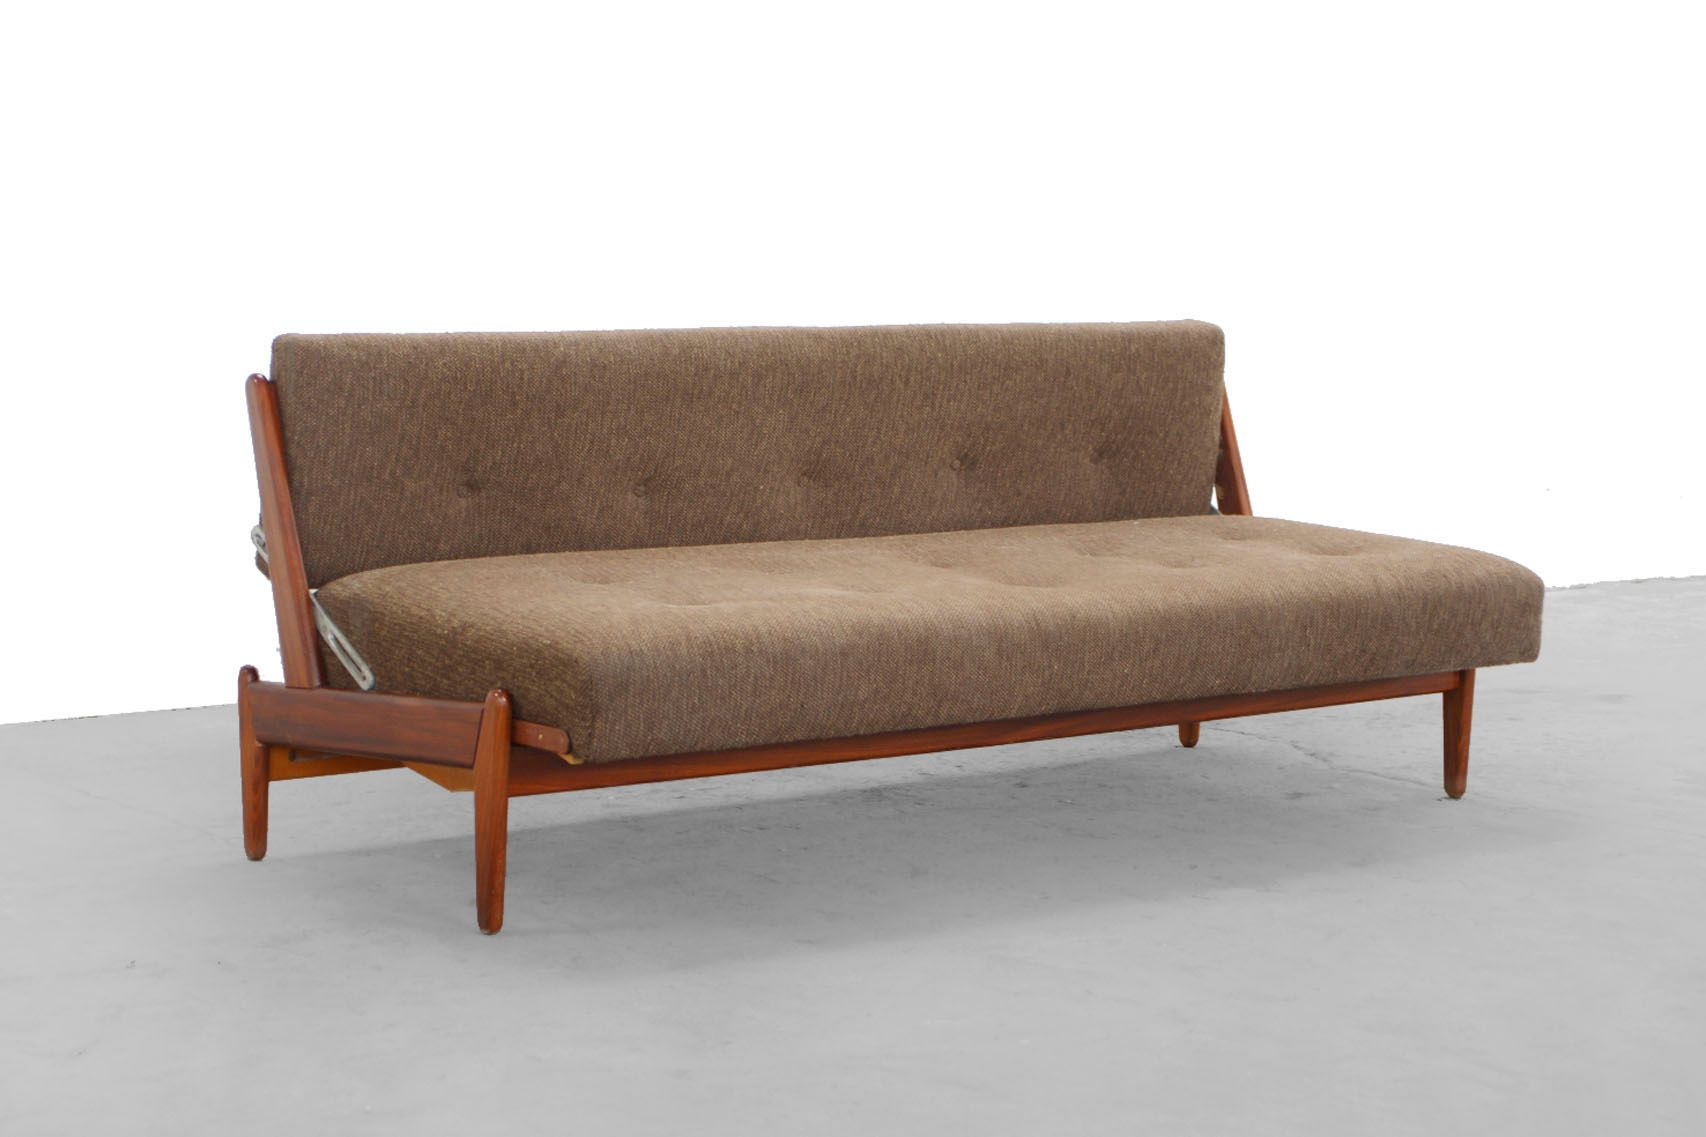 teak sofa by hans olsen f r frem rojle 1955 for sale at pamono. Black Bedroom Furniture Sets. Home Design Ideas